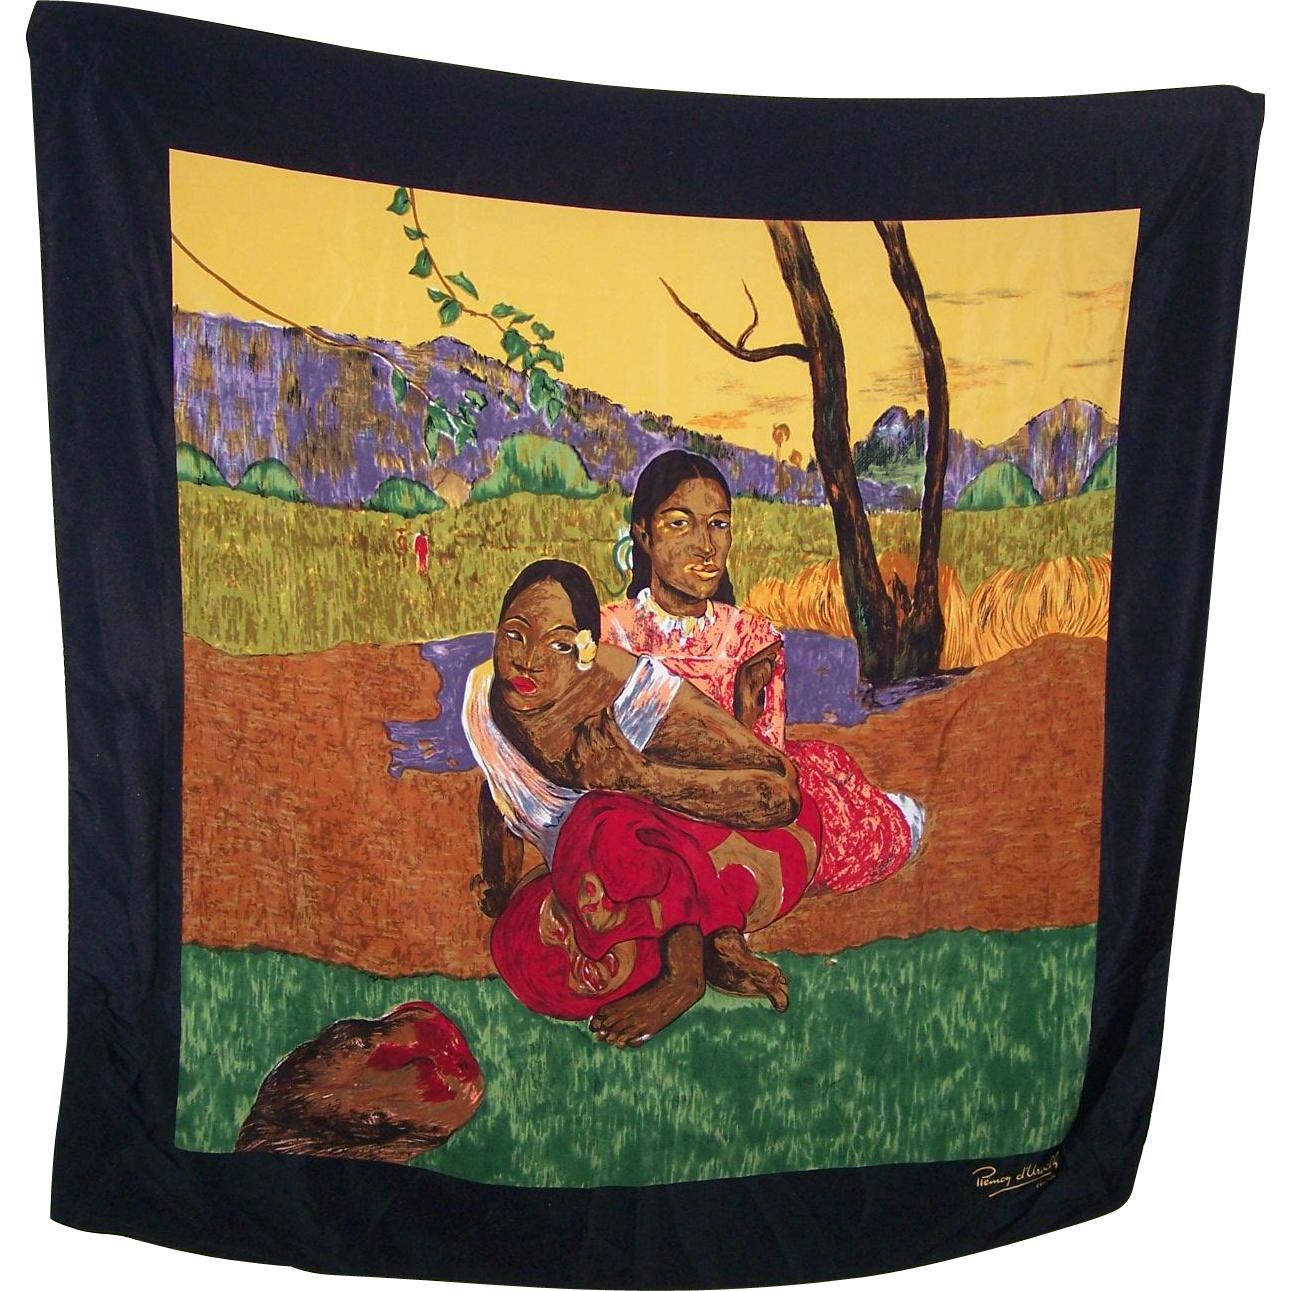 Paul Gauguin's 1892 painting Nafea Faa Ipoipo When will you marry on a Silk Scarf Signed Remoy d'Urville Creation